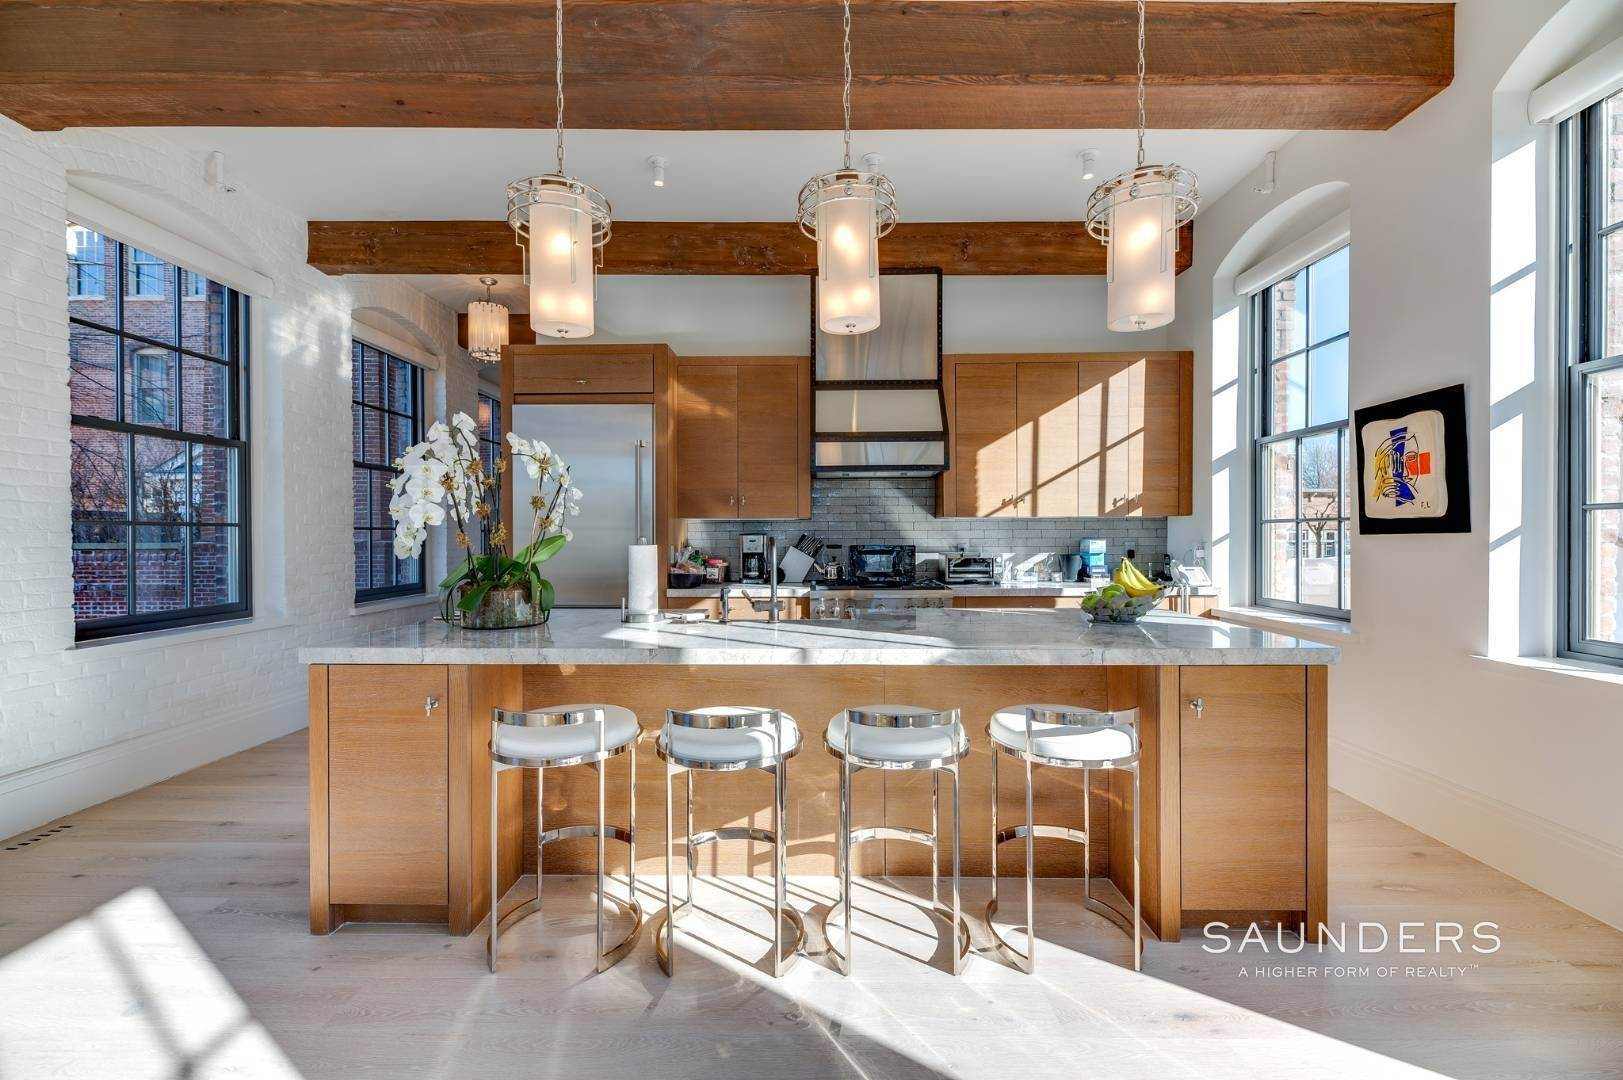 4. Condominiums for Sale at Watchcase Condo - Design By Steven Gambrel 15 Church Street, Unit C-220, Sag Harbor, Southampton Town, NY 11963